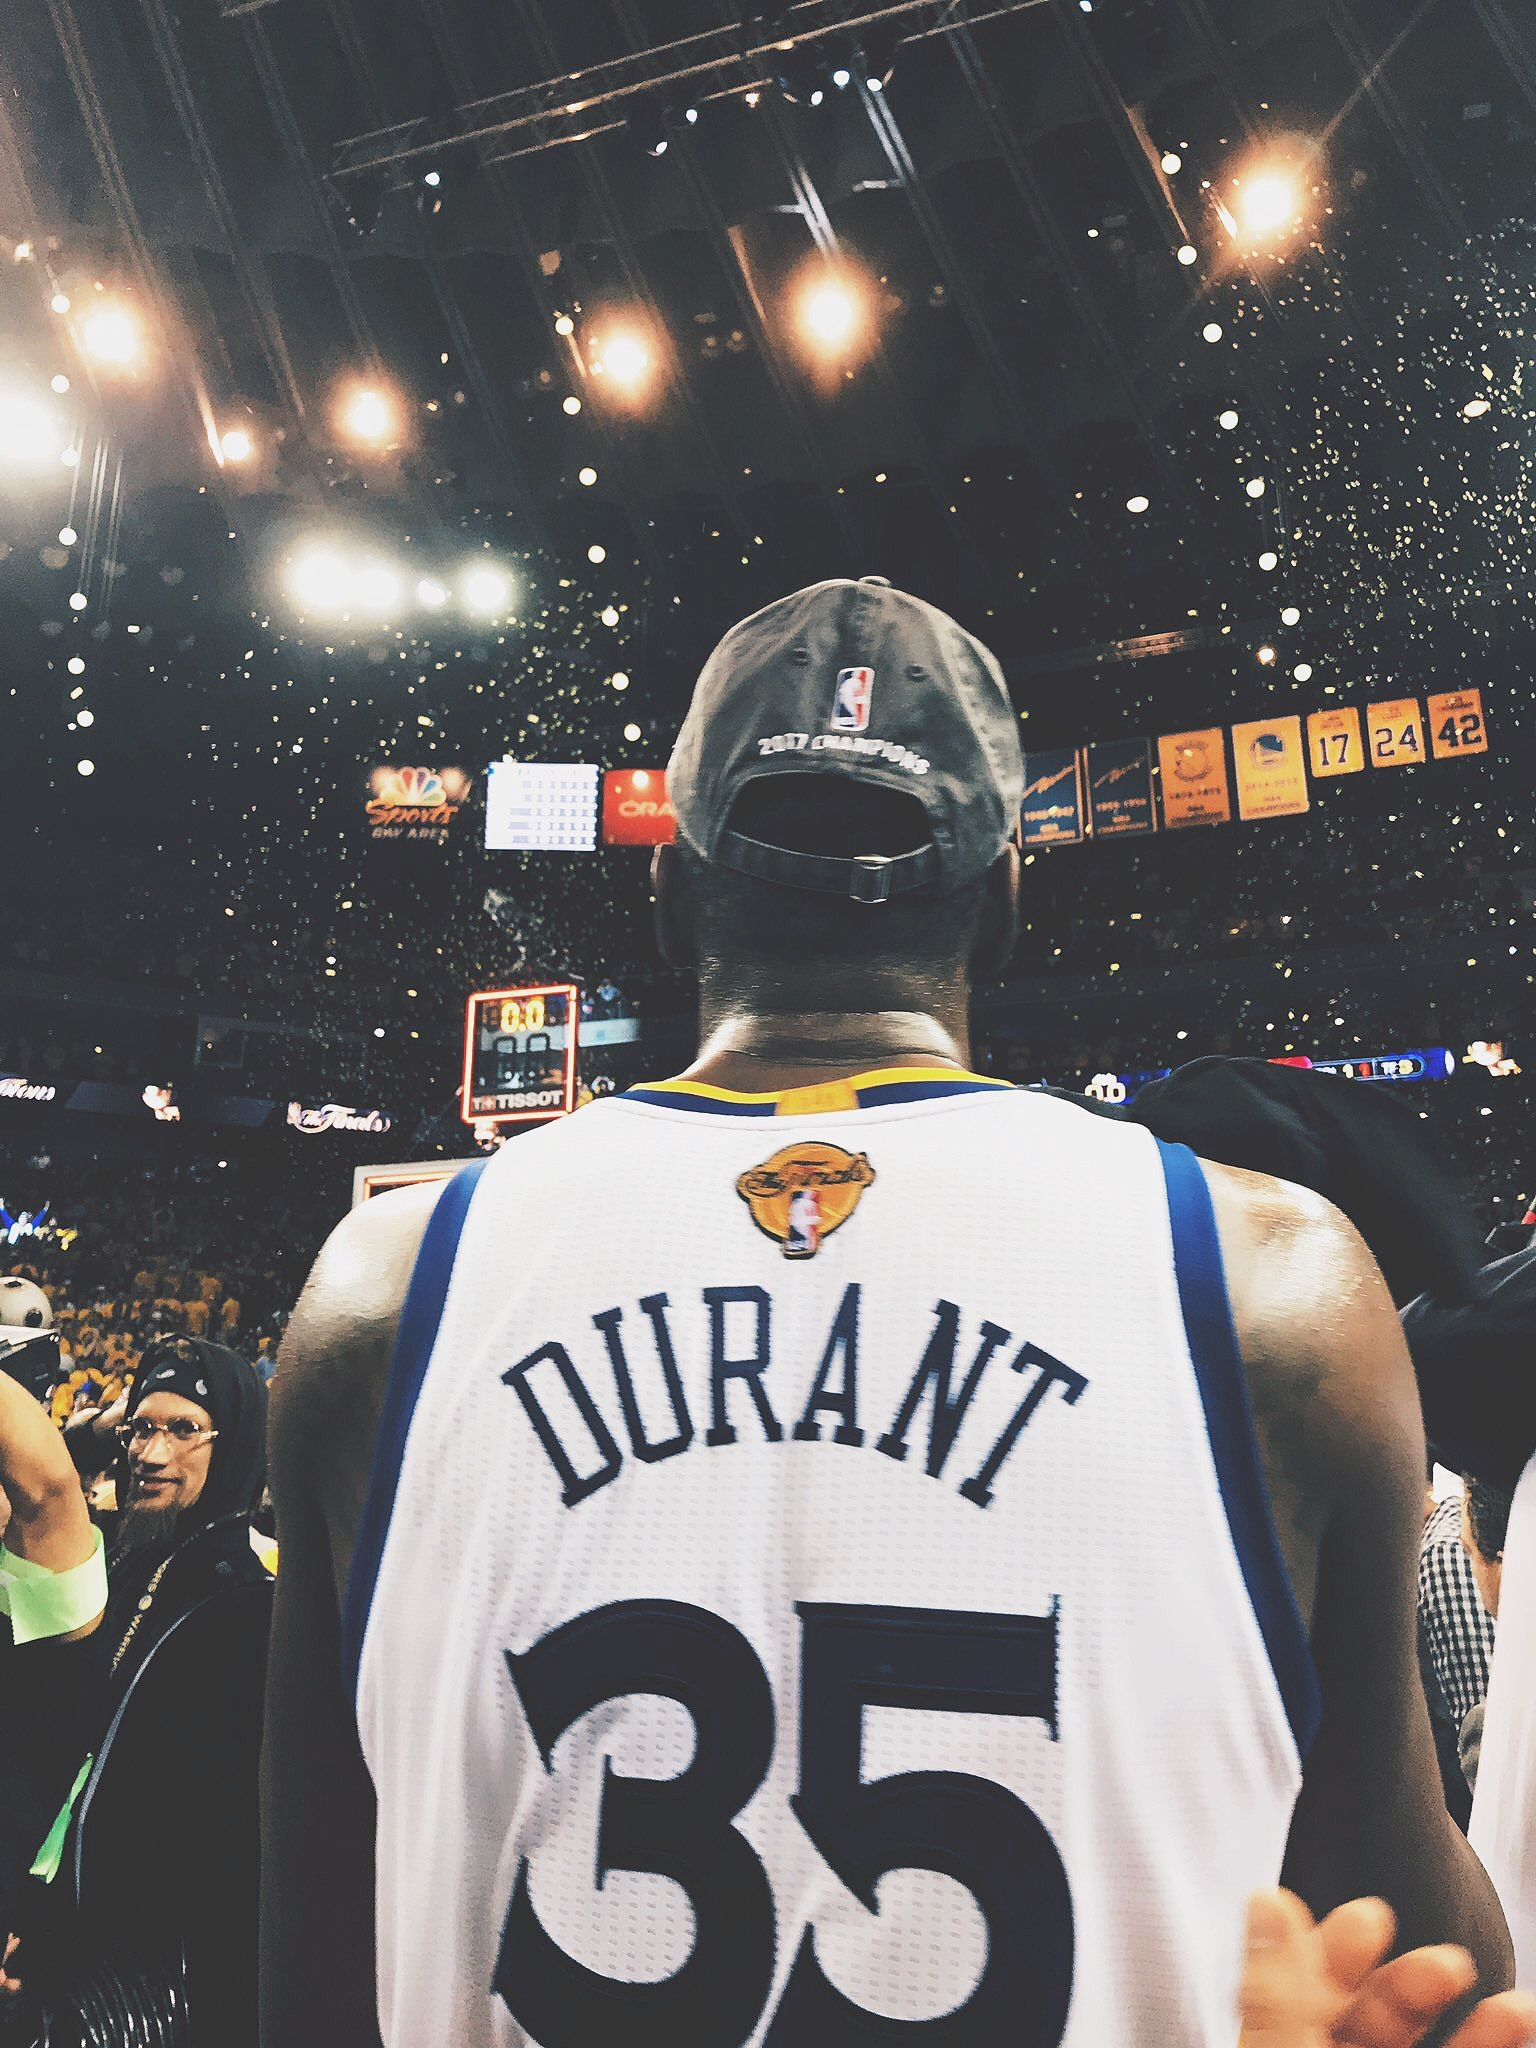 Kevin Durant Nba Champion Golden State Warriors Nike Wallpaper Jogadores Nba Nba Esporte